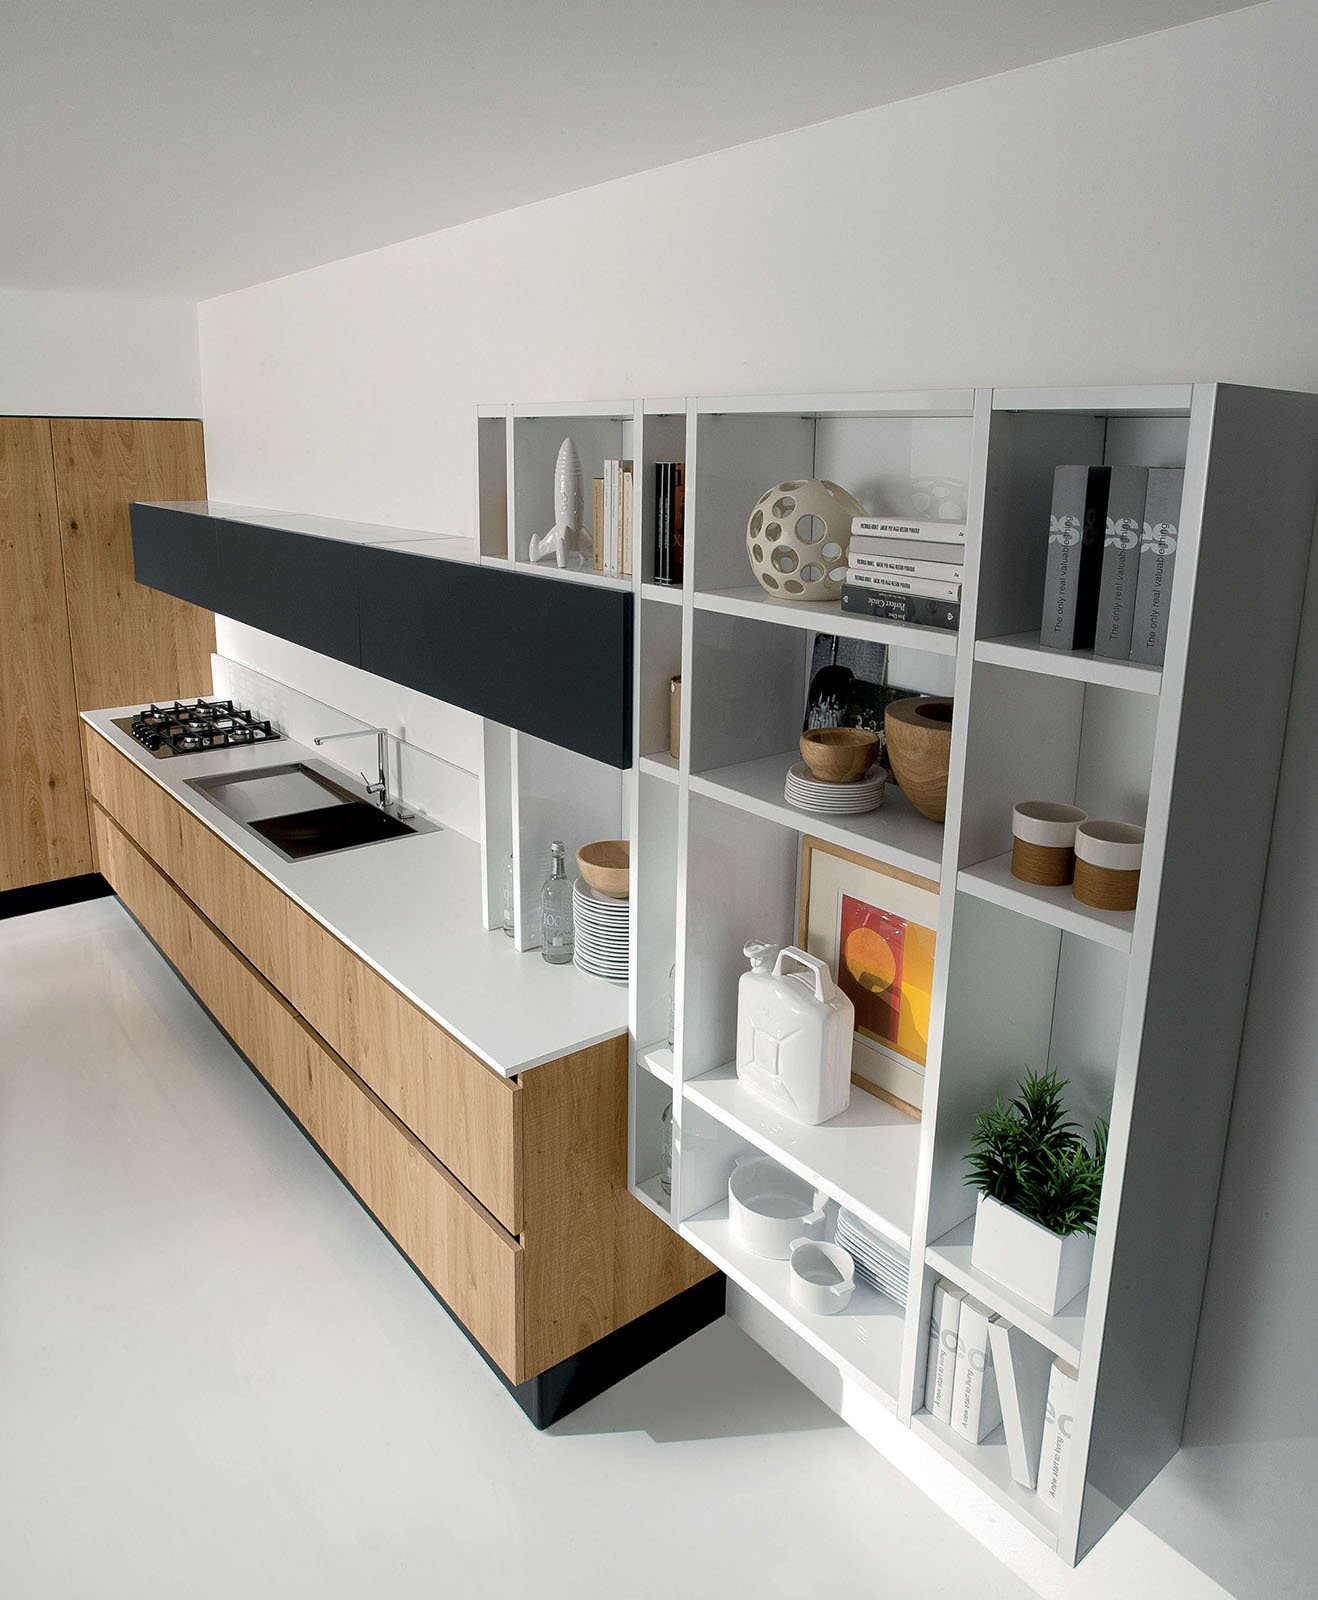 aran cucine volare cucina scaffali cose di casa. Black Bedroom Furniture Sets. Home Design Ideas